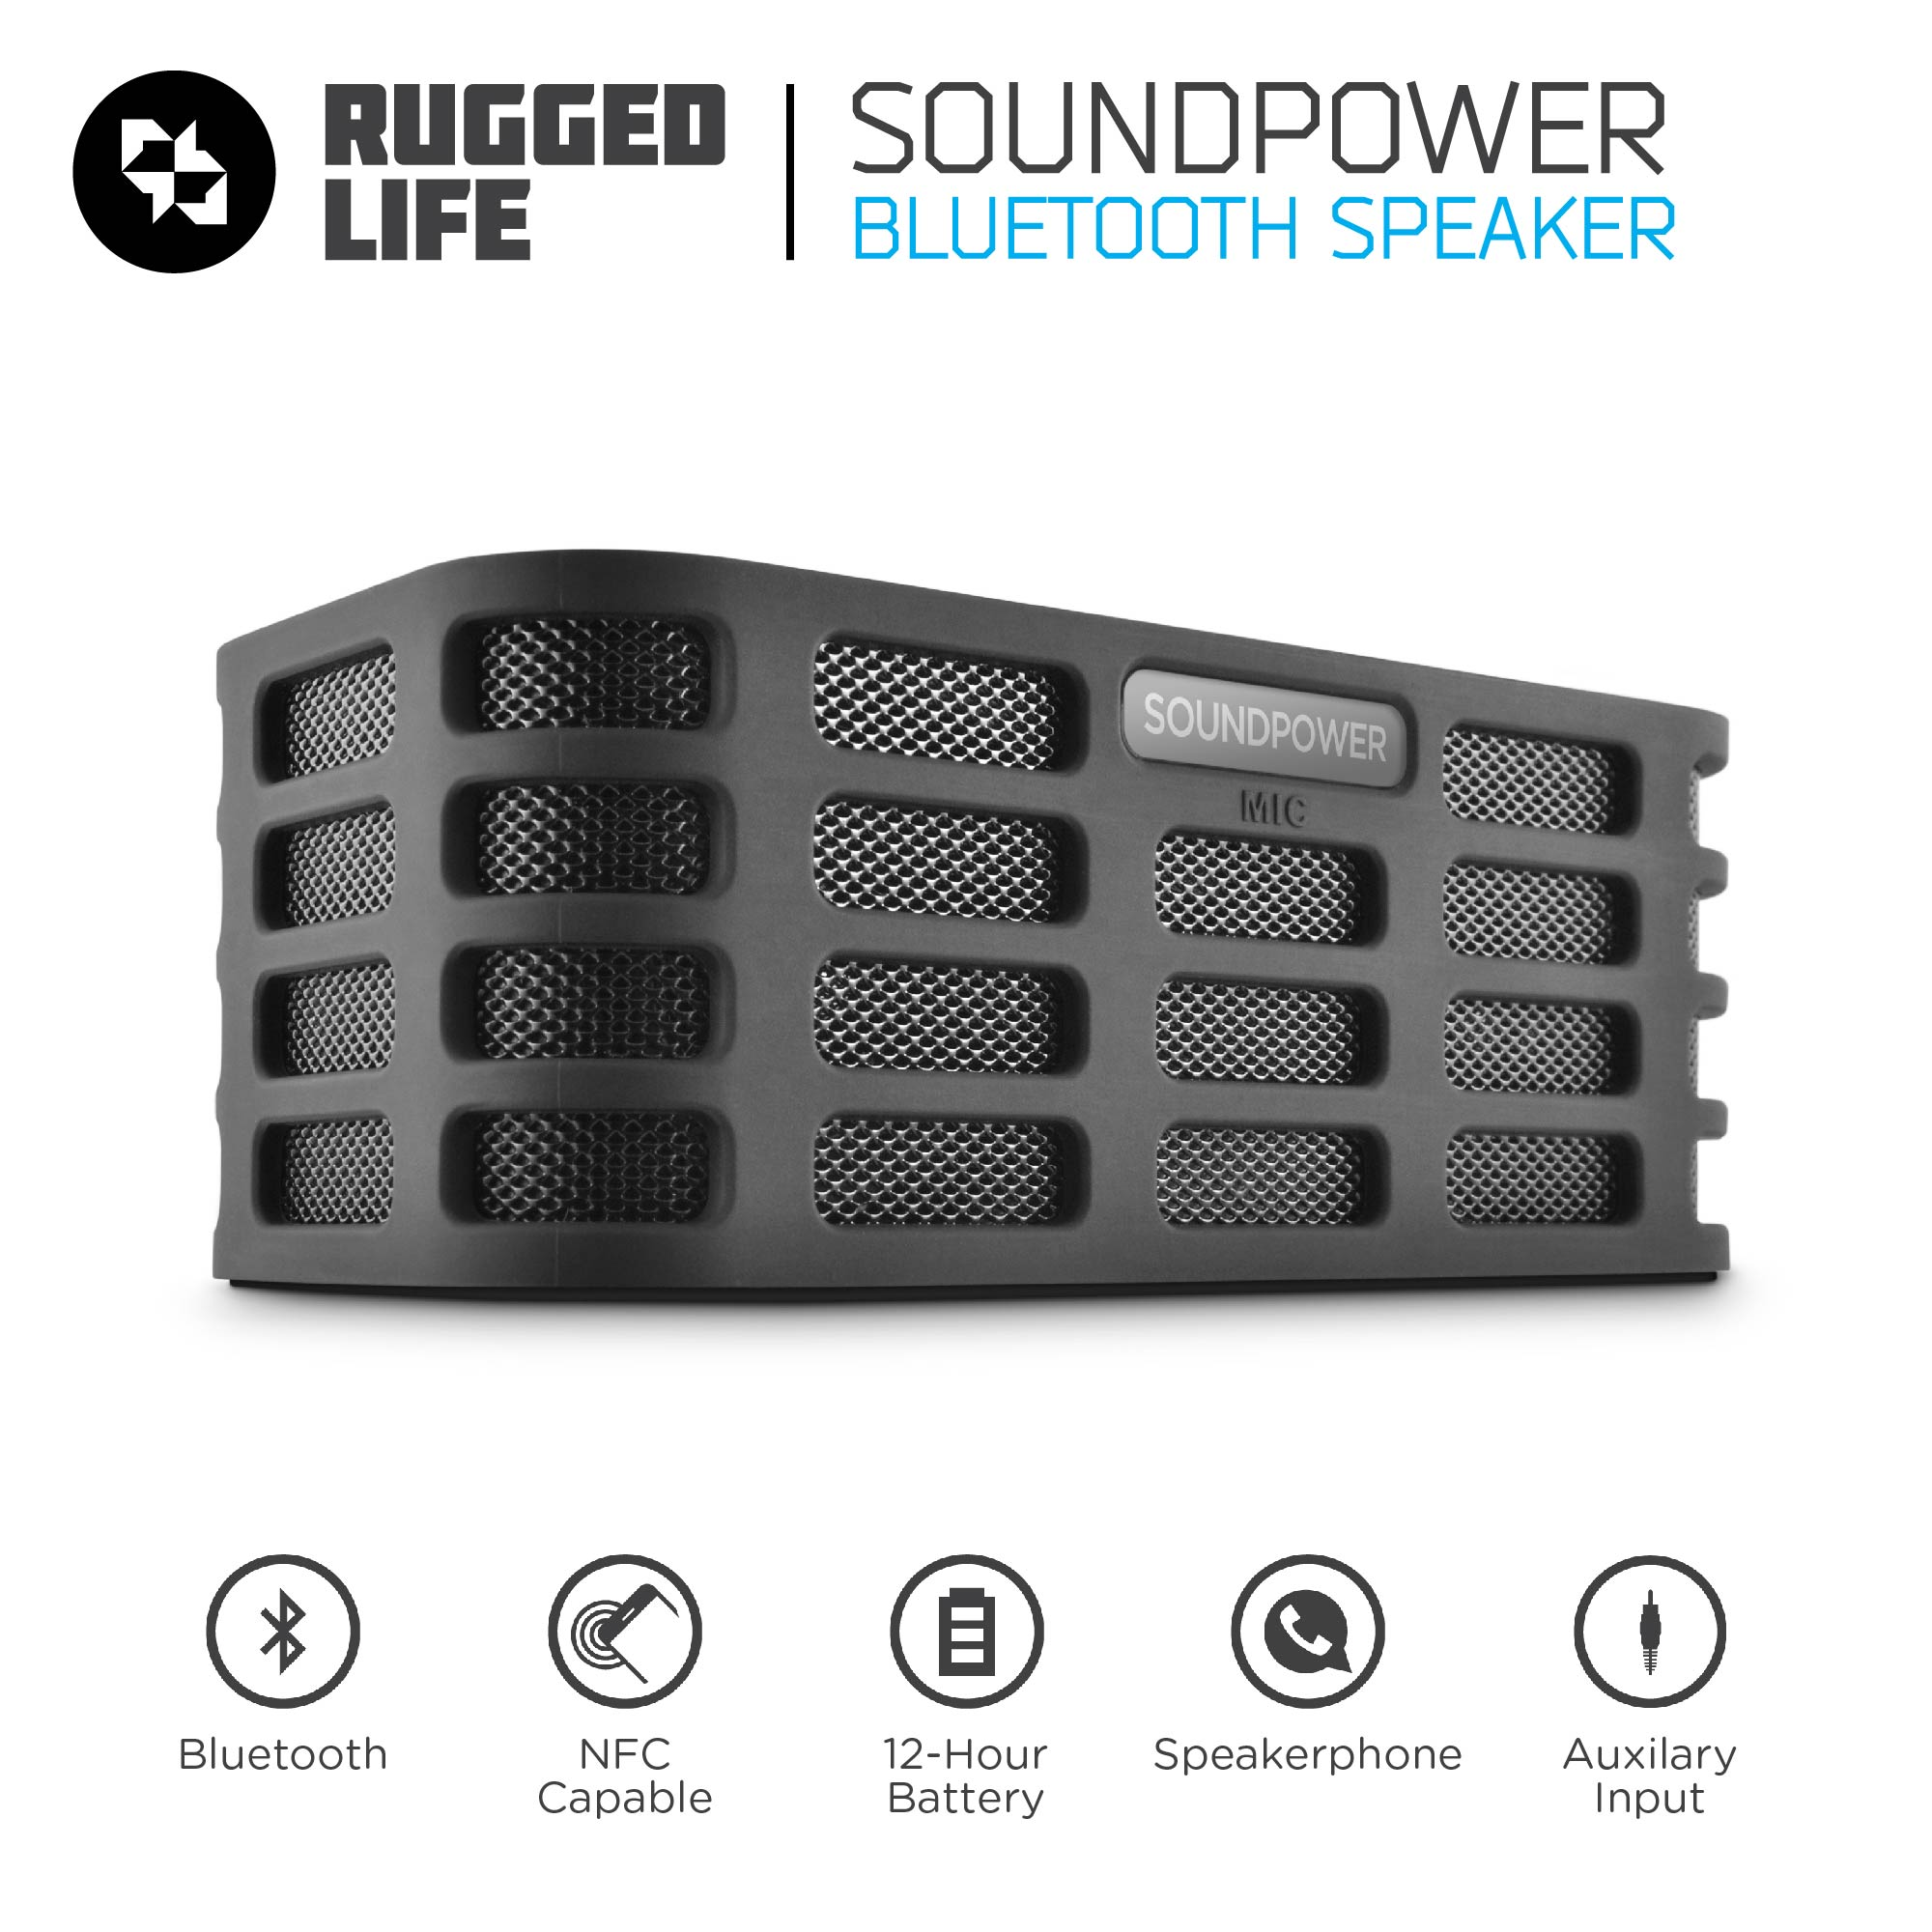 Ematic RuggedLife Bluetooth Speaker and Speakerphone